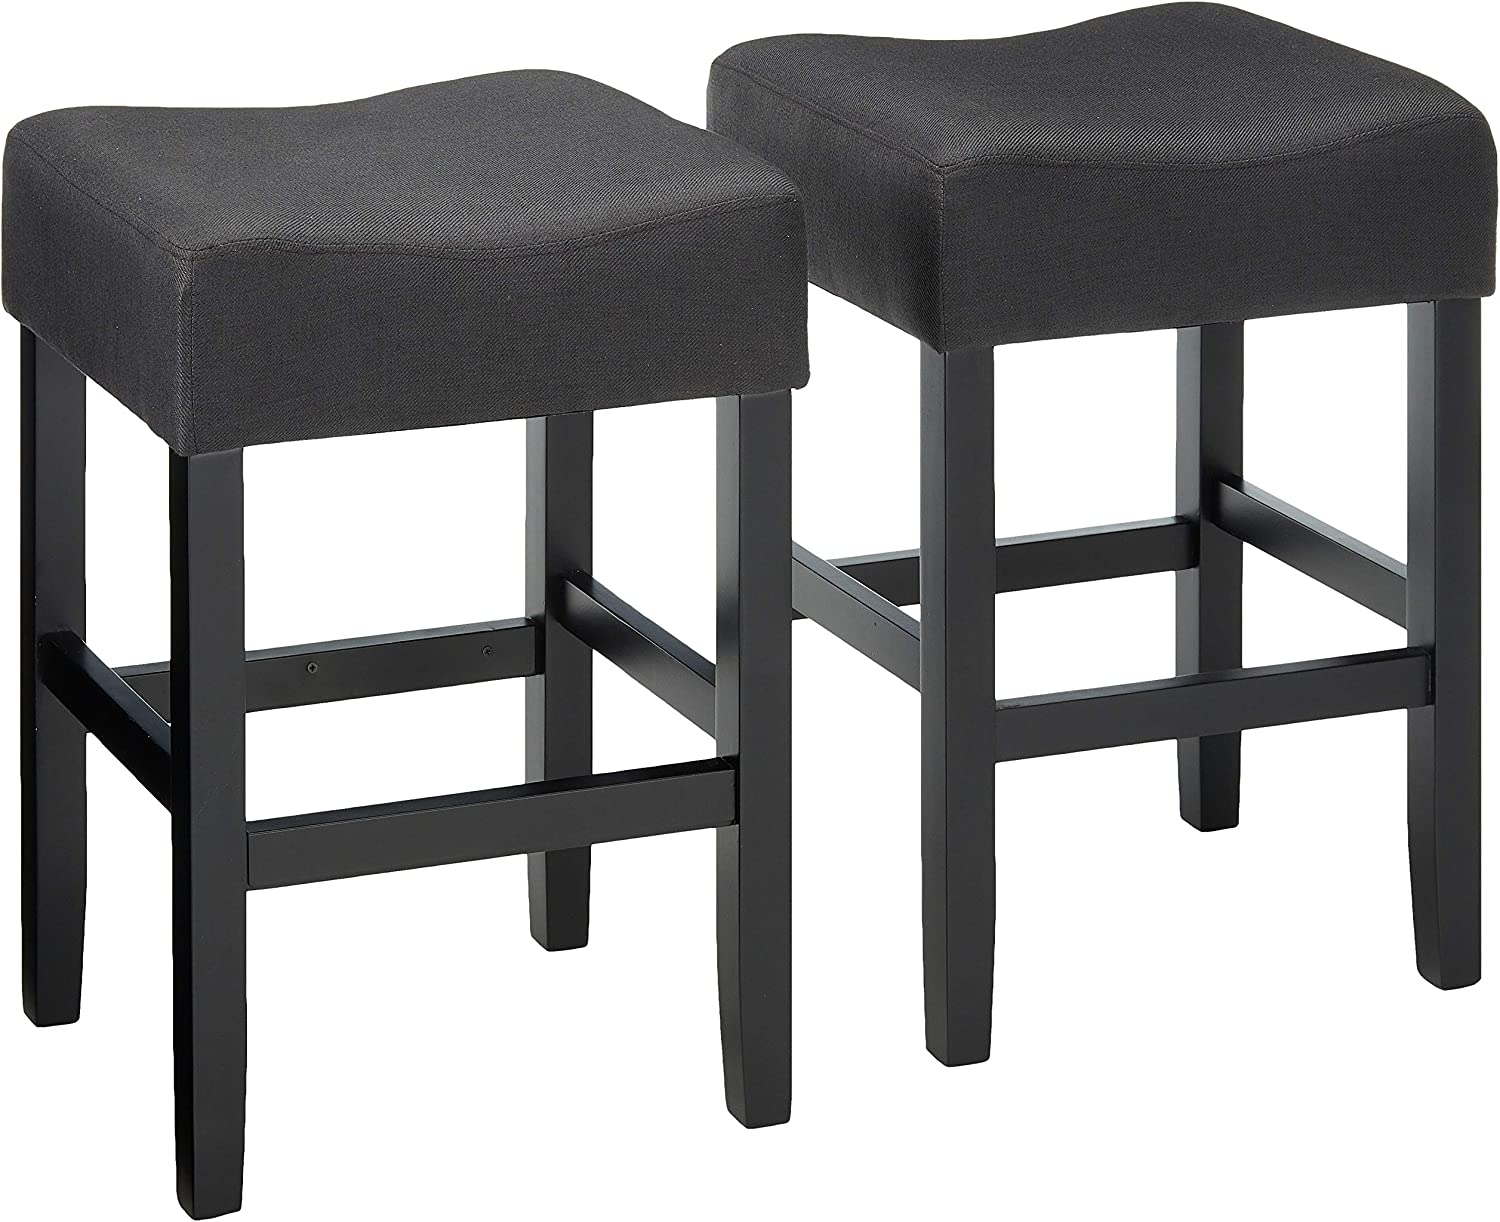 Christopher Knight Home 300877 Portofino Backless Dark Charcoal Fabric Counter Stools (Set of 2)